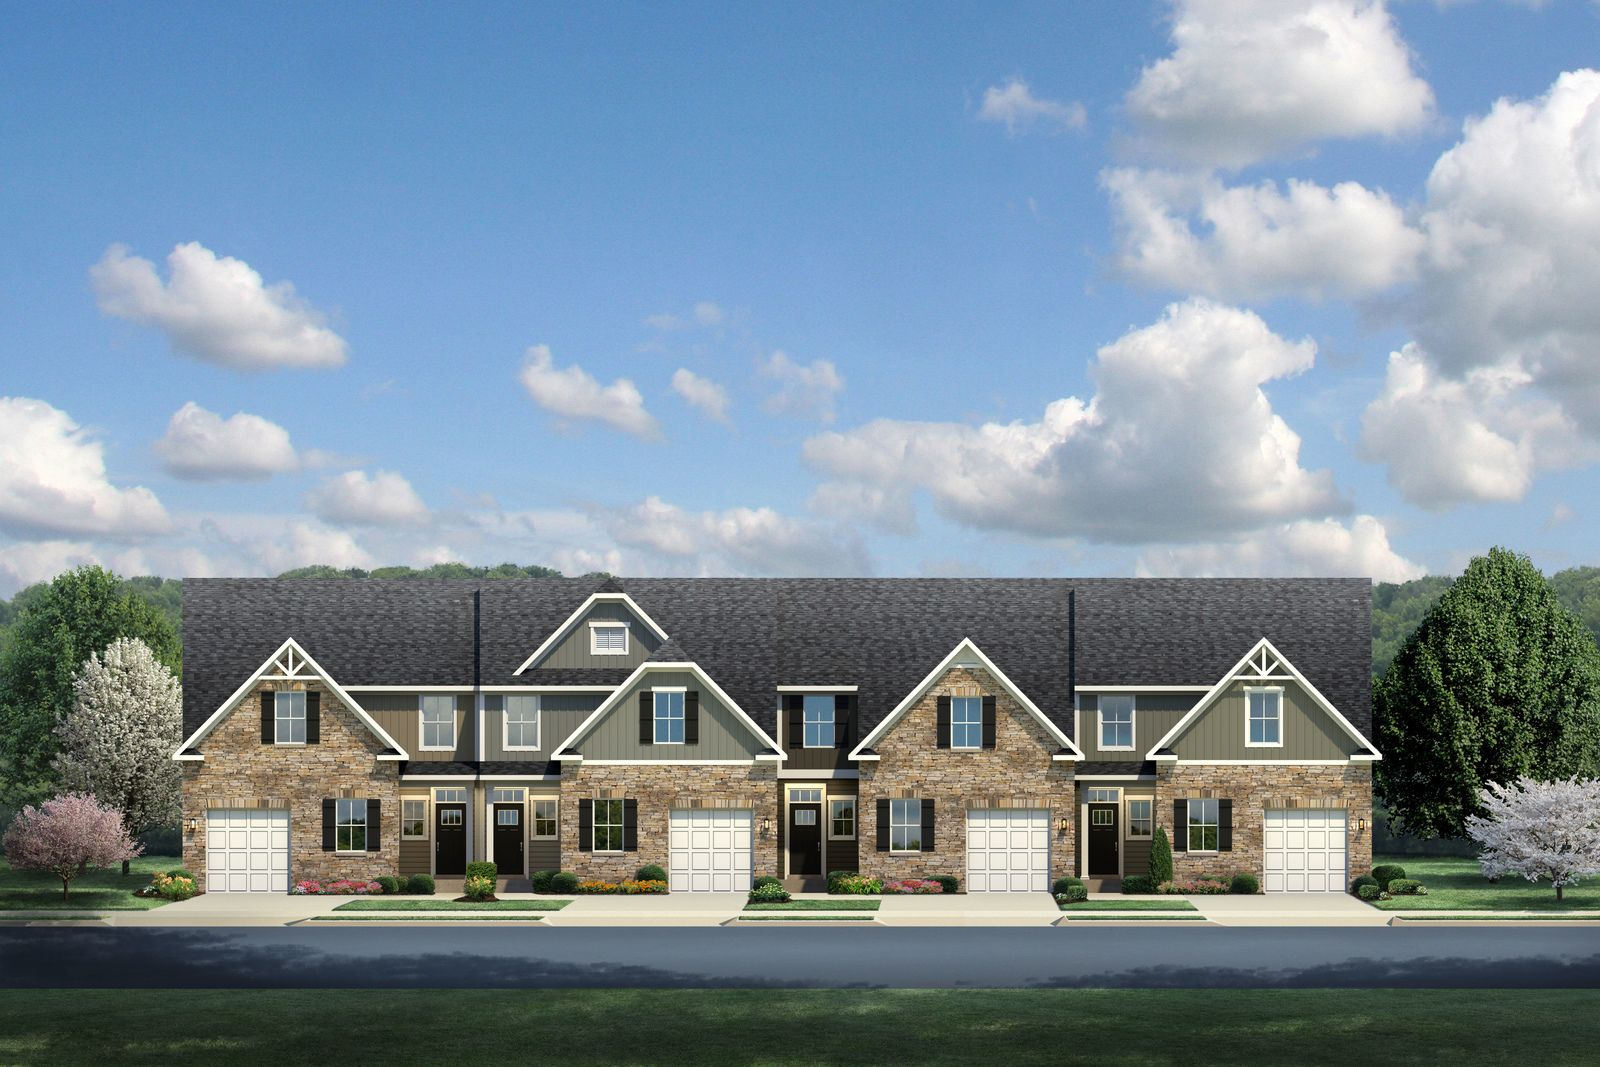 Grand Opening, by appointment only: Silverleaf's newest section!:Silverleaf Villas - the highly anticipated new section of 1st-floor owner's townhomes is now open!Join the VIP List to set your VIP Appointment!